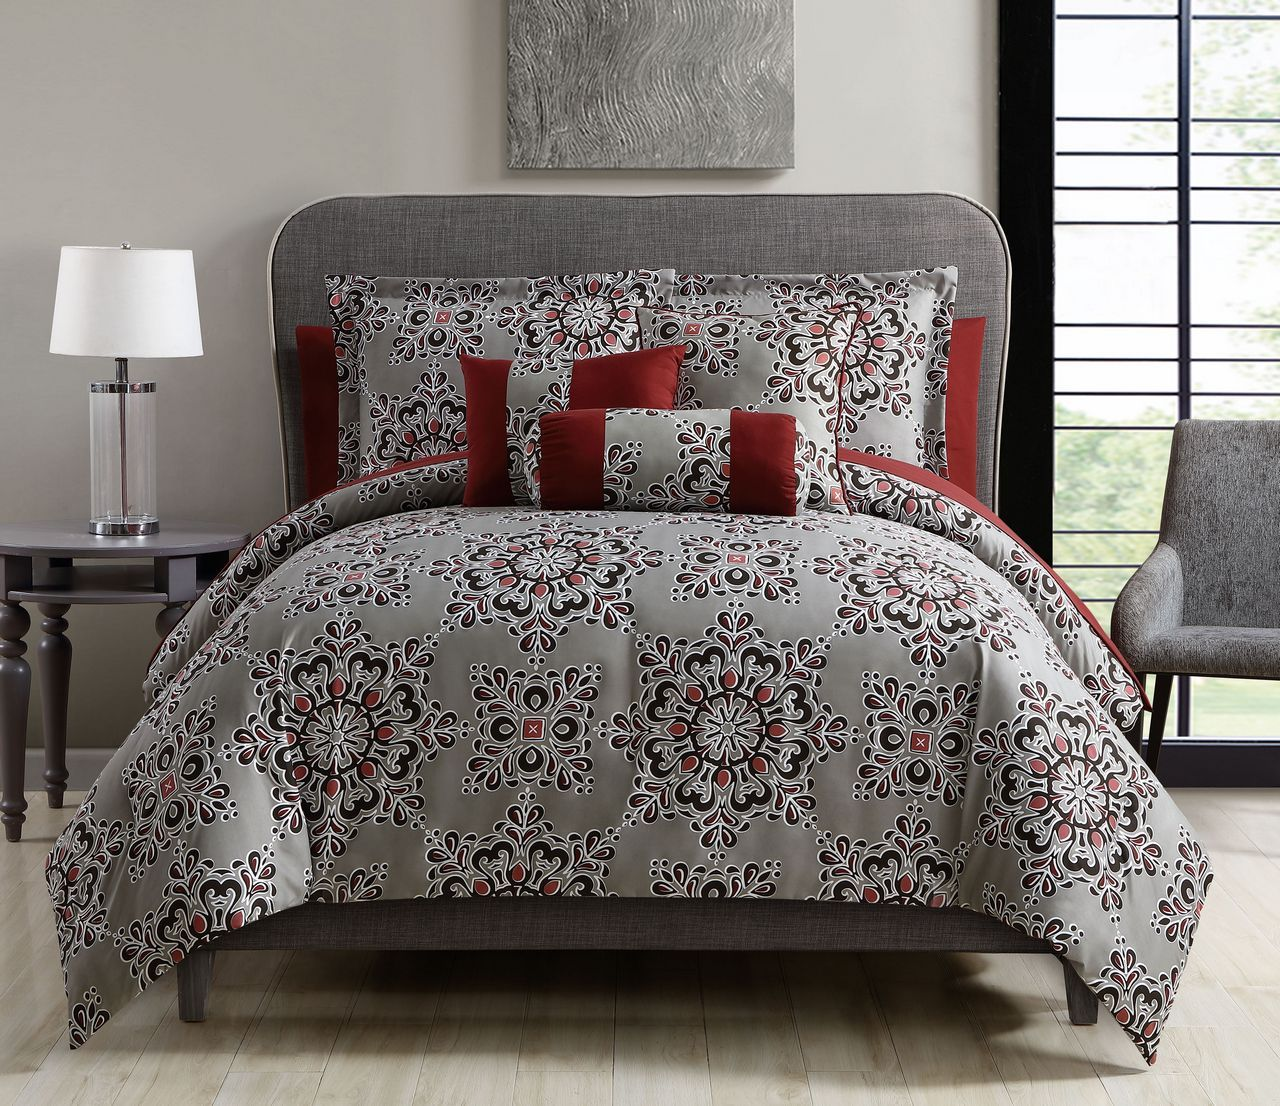 10 Piece Karla Taupe Red Bed In A Bag Set House Stuff Comforters